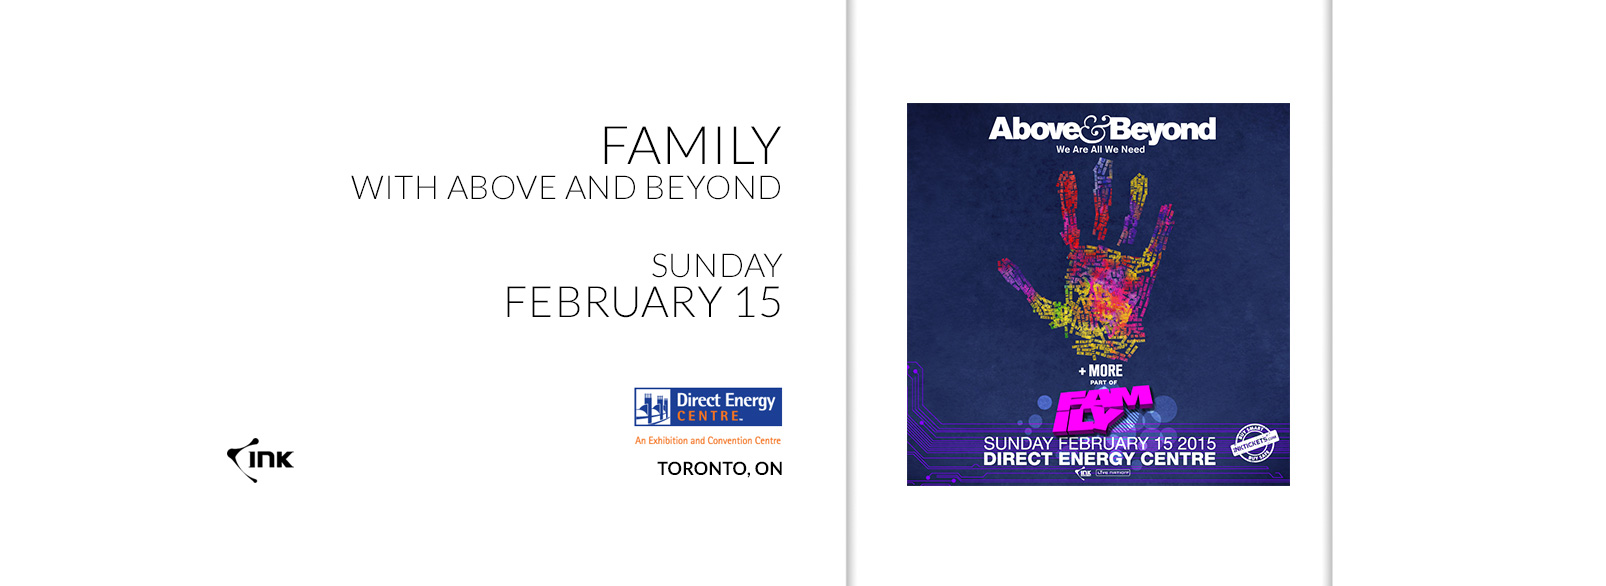 Above & Beyond @ Direct Energy Centre